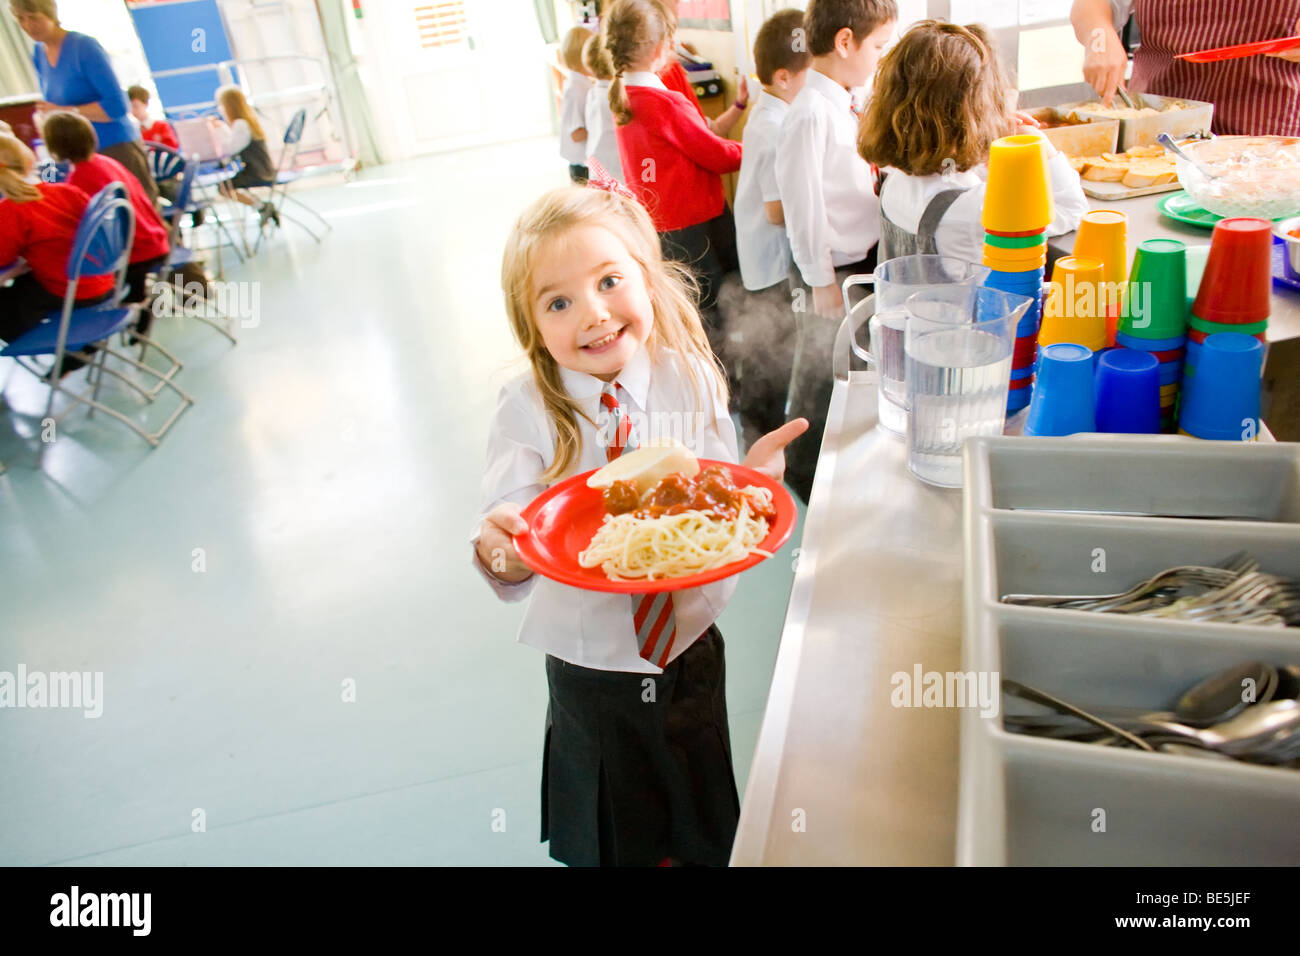 Dîner à l'école l'école primaire uk Photo Stock